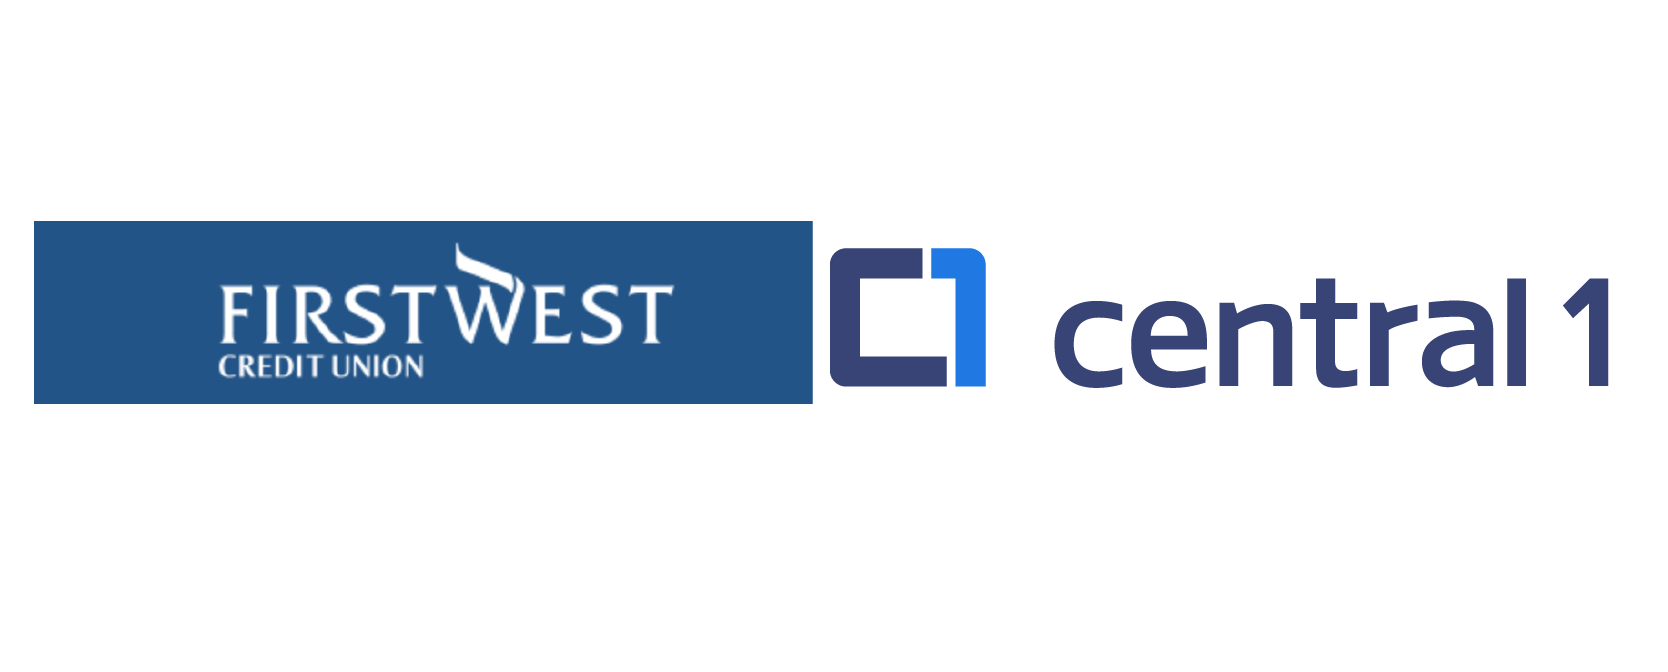 First West credit union and Central 1 logos